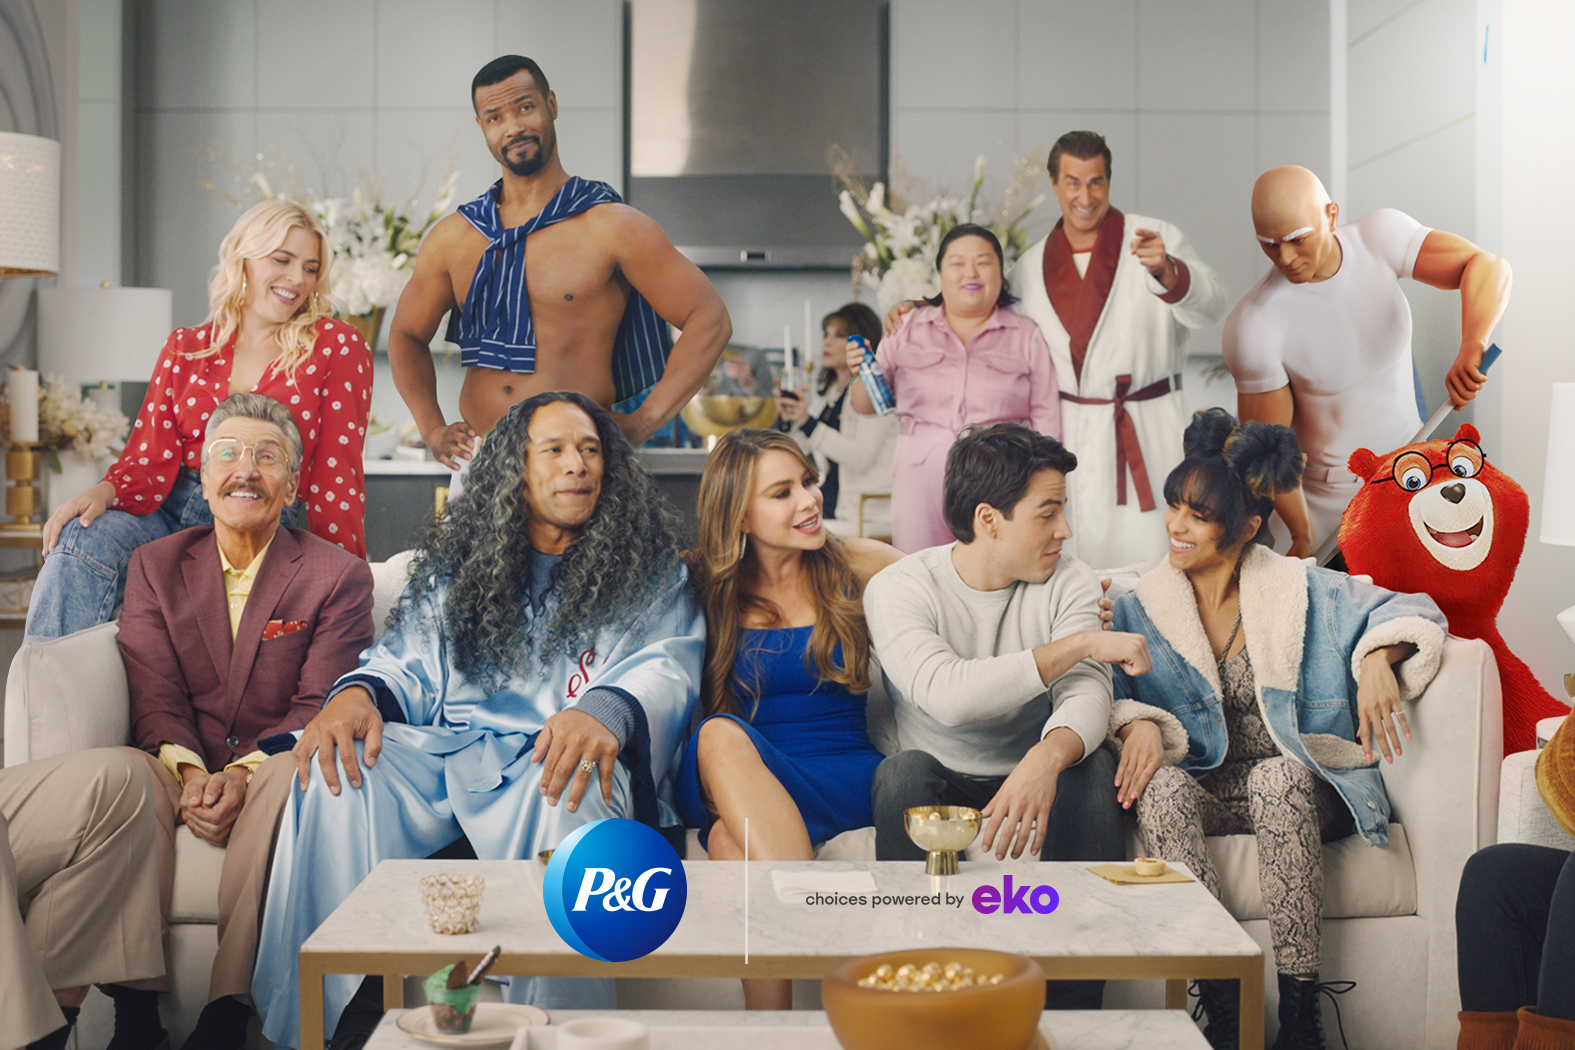 Super Bowl alert: what's trending, and it's another P&G ad